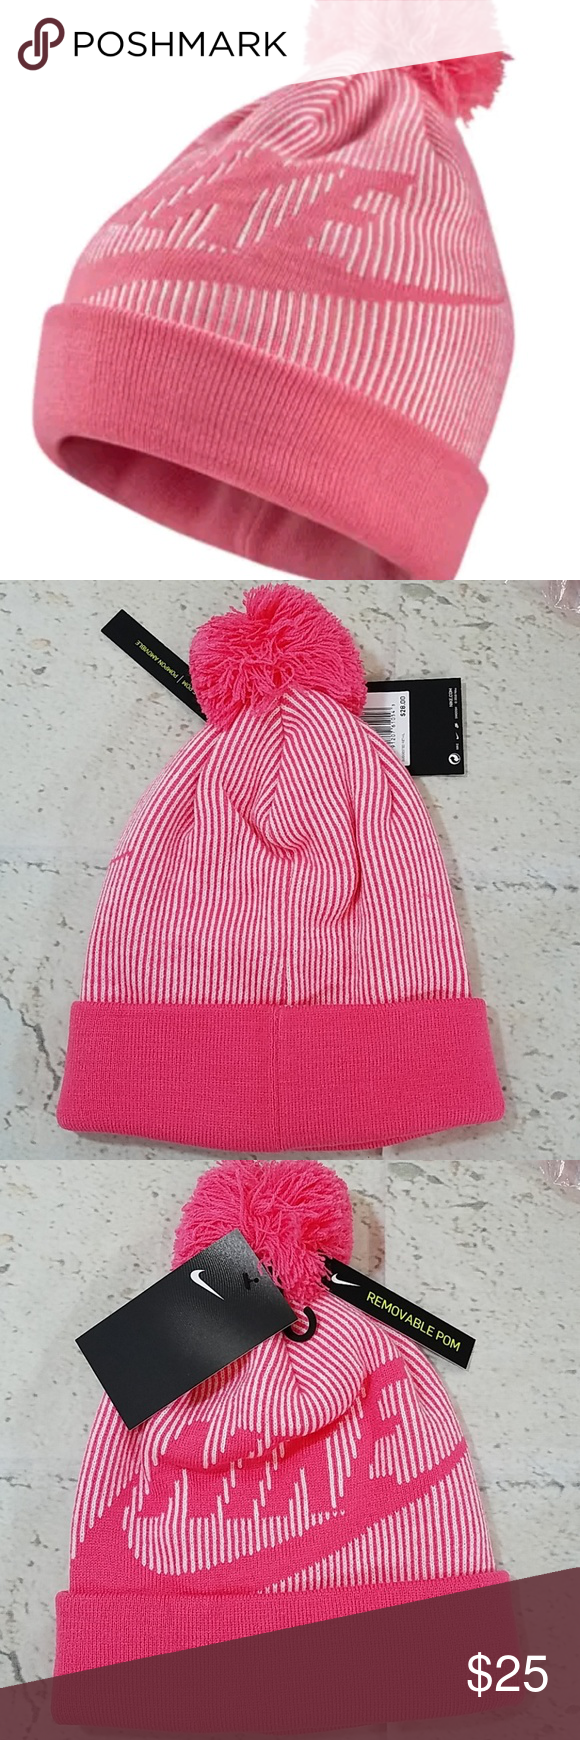 8c57dbd10c23a7 Nike Beanie Toboggan Hat Pink NWT Women's Nike Beanie Removable Pom Nwt Nike  Accessories Hats